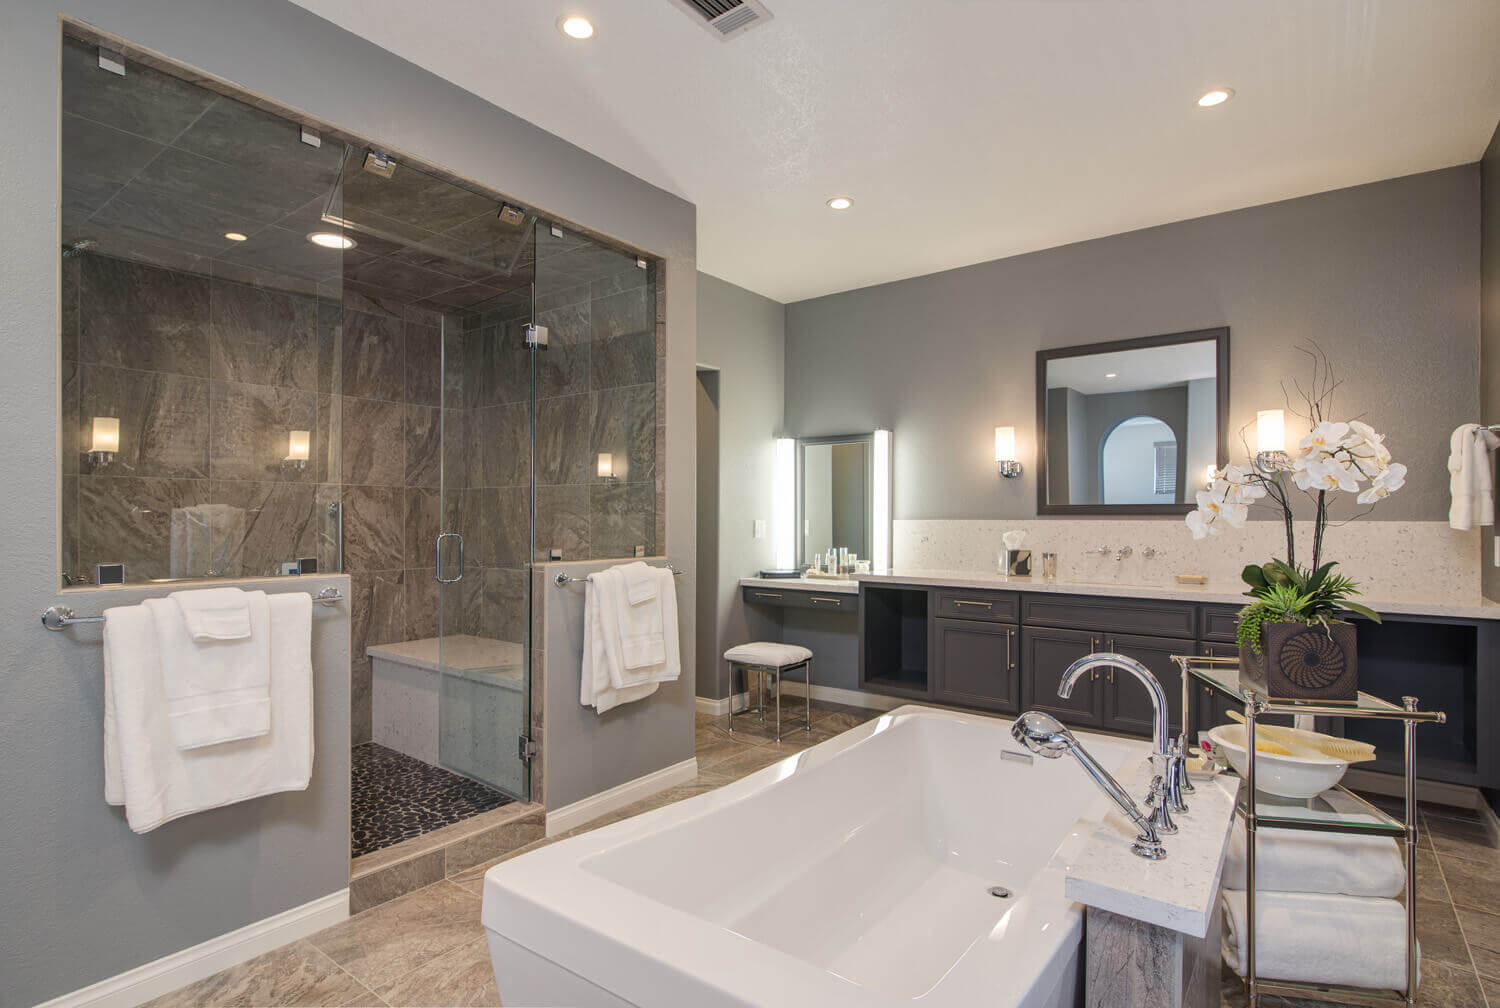 2018 bathroom renovation cost get prices for the most - Pictures of remodeled small bathrooms ...